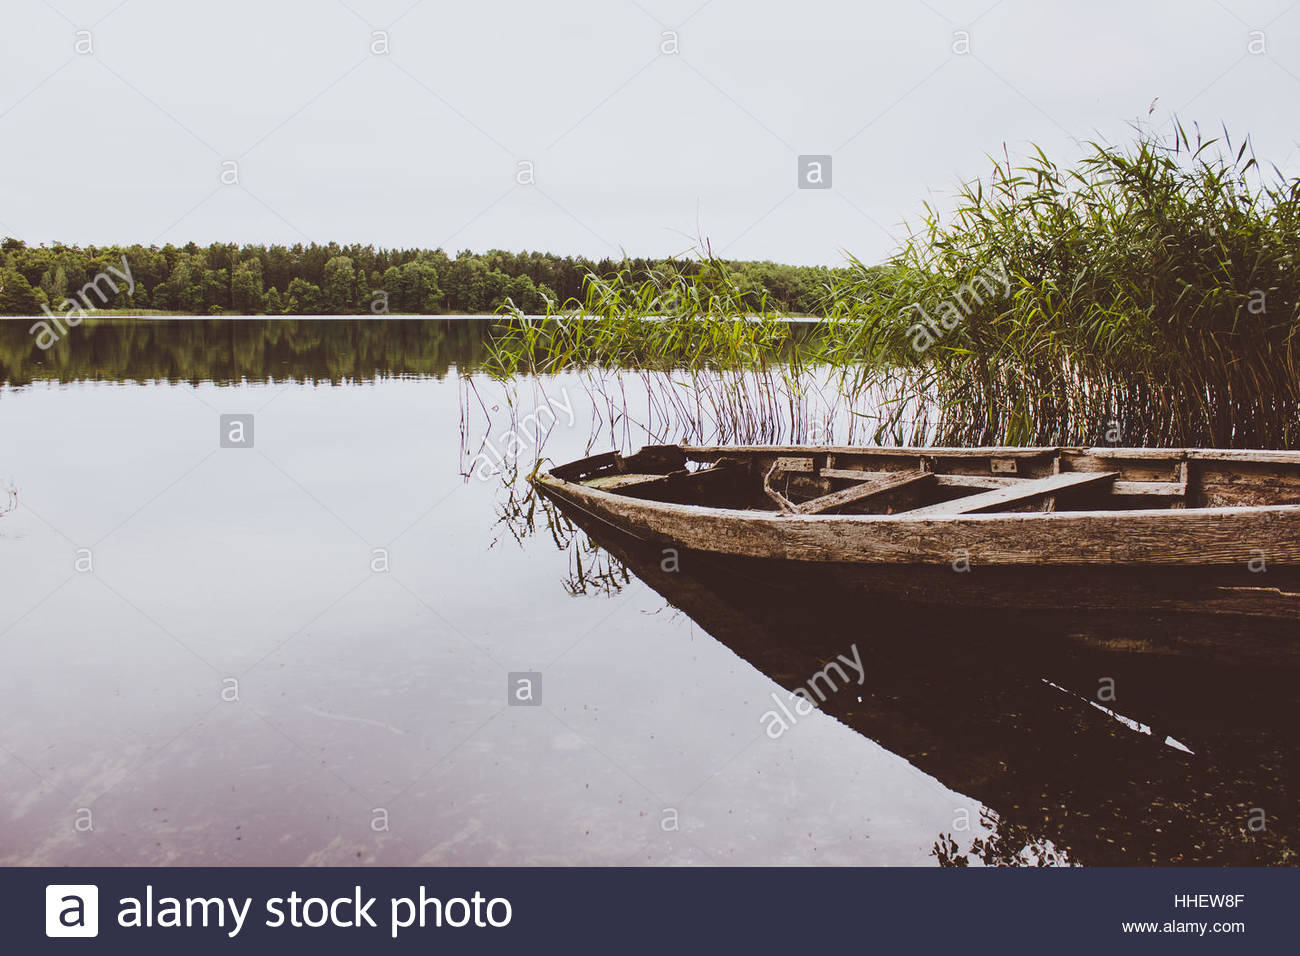 Broken Rowingboat in lake rowboat in Grimnitz Lake Brandenburg, ship broken   rustic boat forgotten conceptual photography - Stock Image